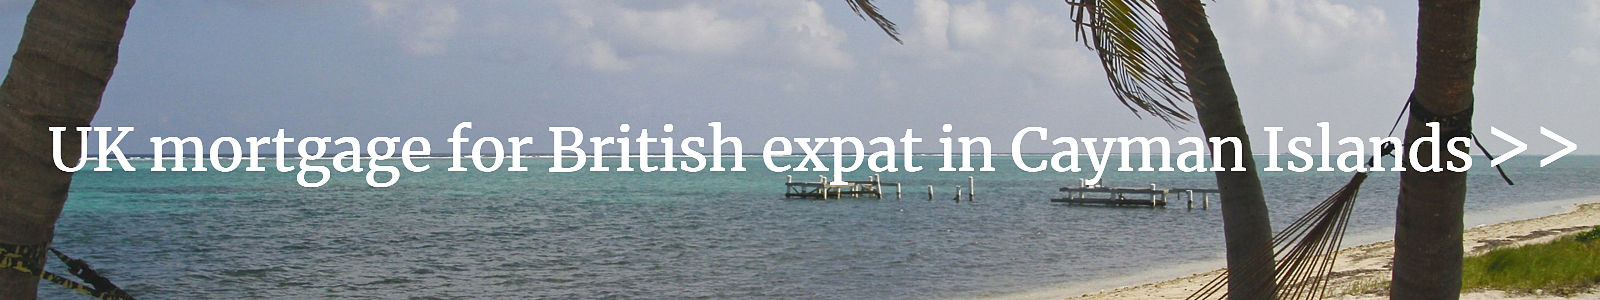 LINK for UK mortgage for British expat in Cayman Islands